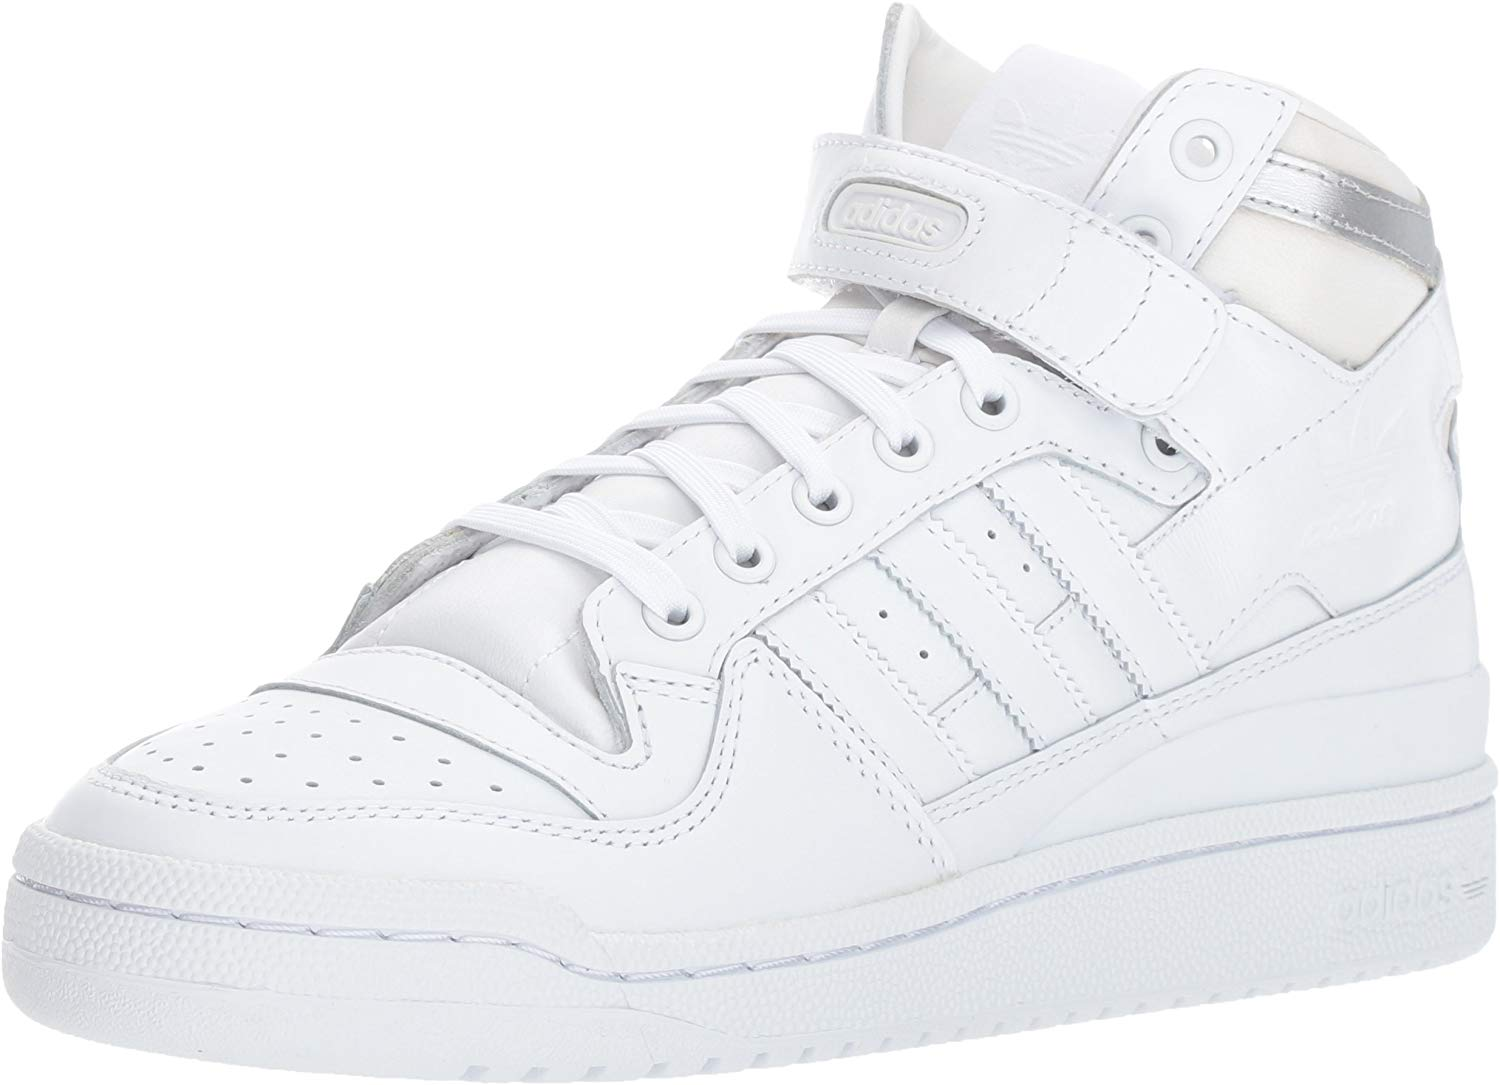 Men's Forum Mid Refined Fashion Sneaker by Adidas, available on amazon.com for $54 Kylie Jenner Shoes Exact Product